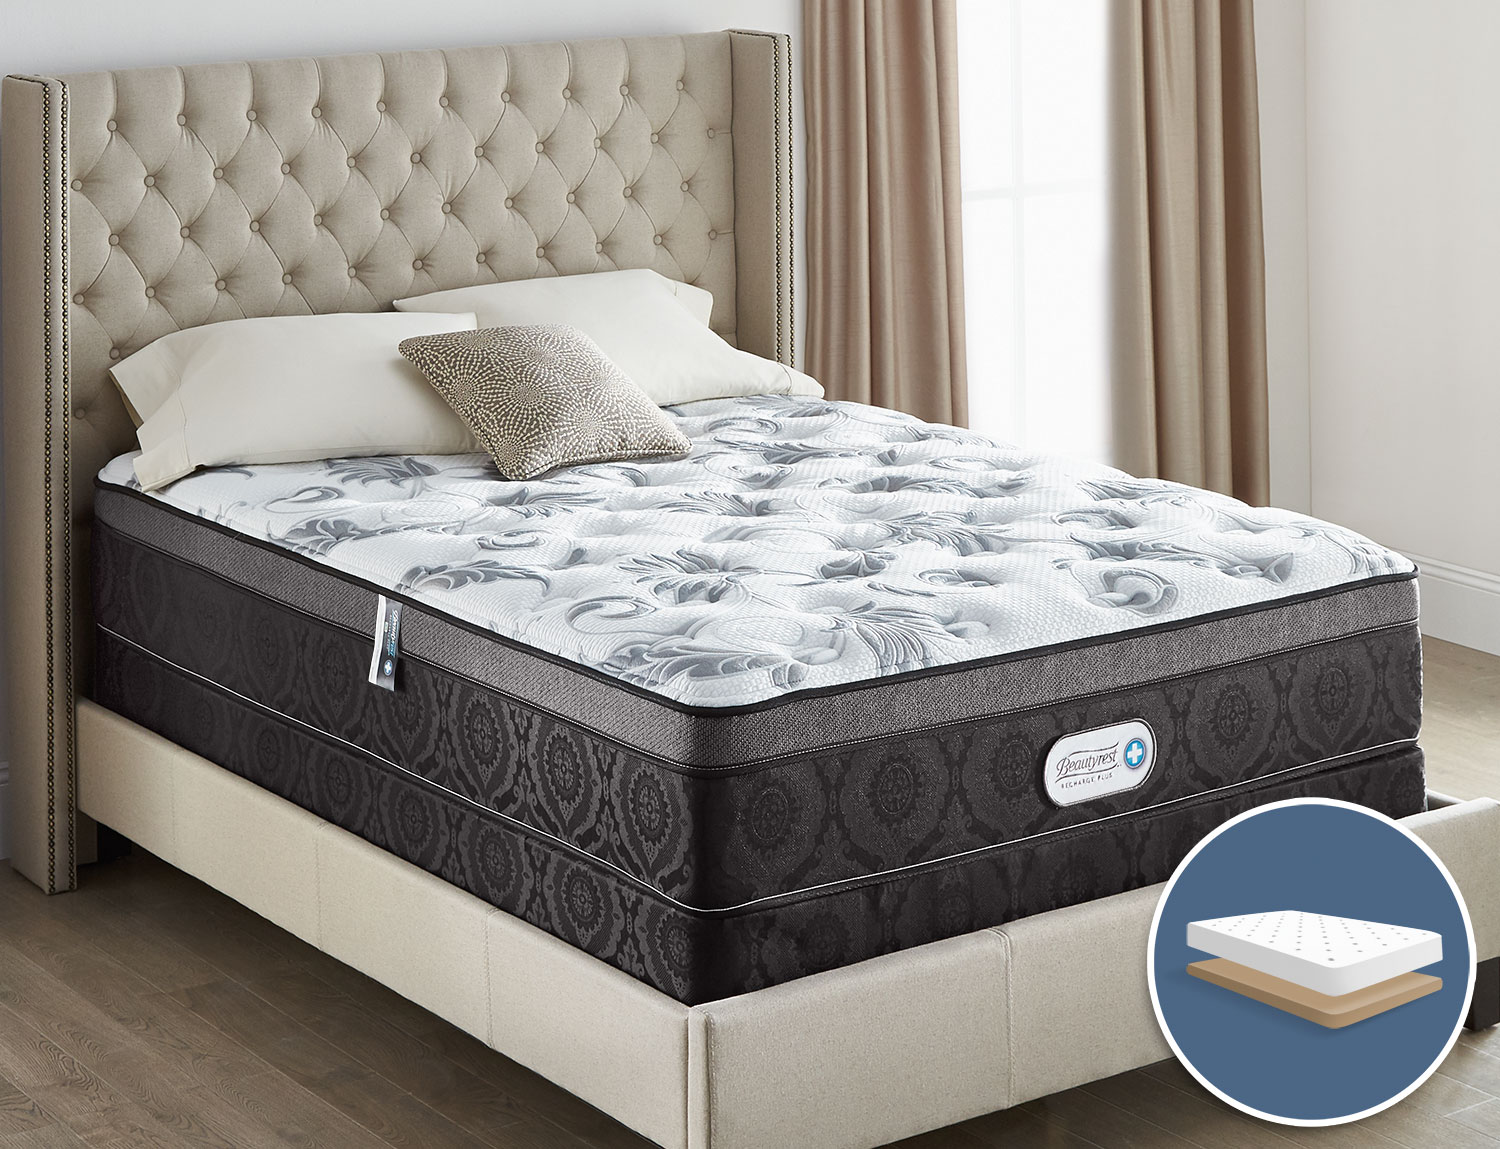 Beautyrest® Recharge Plus Allure Ultra Euro-Top Low-Profile Full Mattress Set